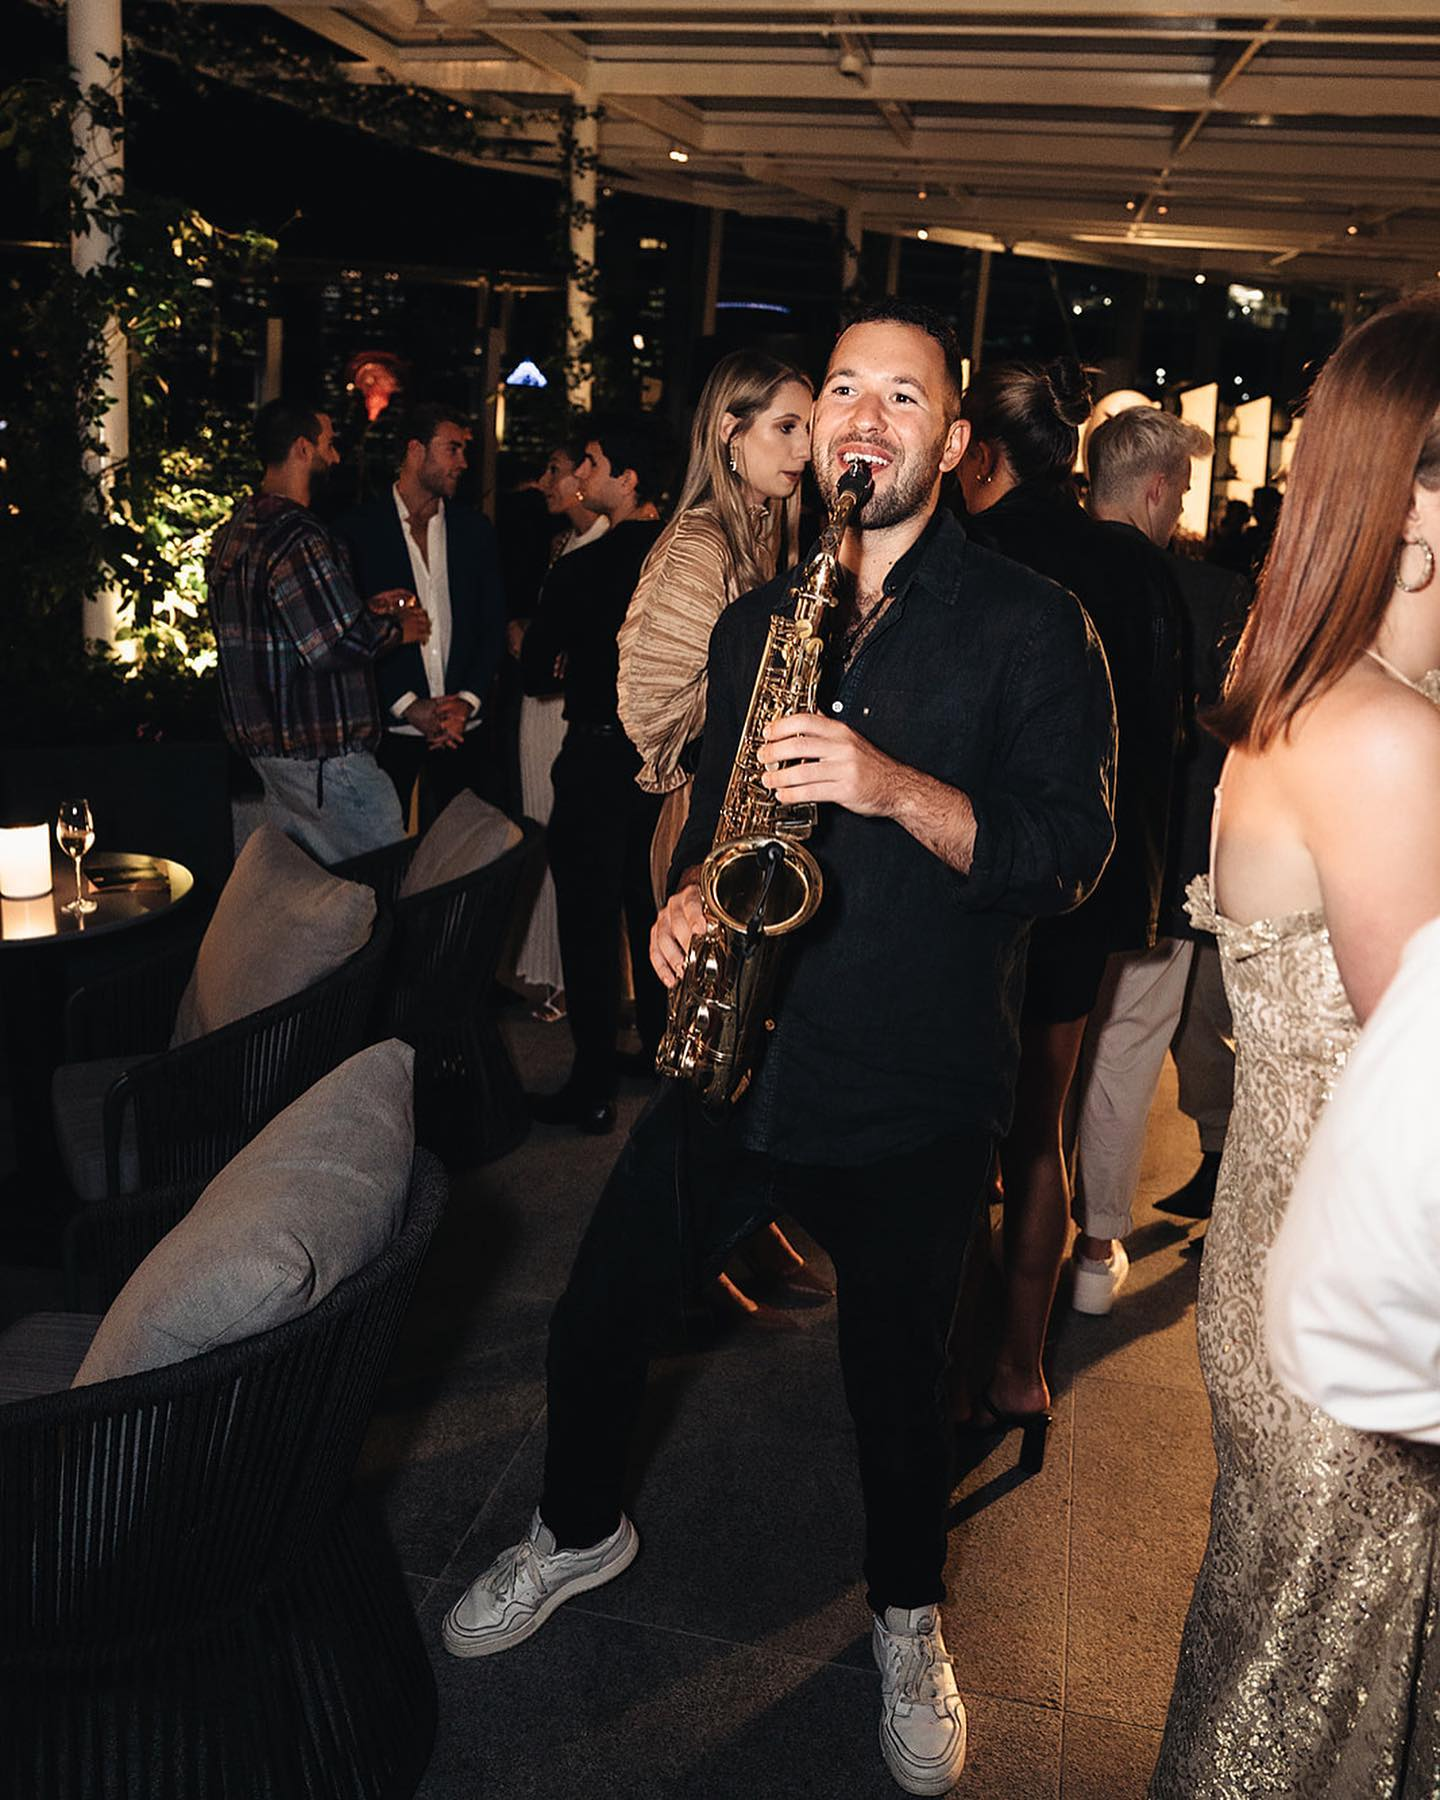 Sax Player High End Corporate Events